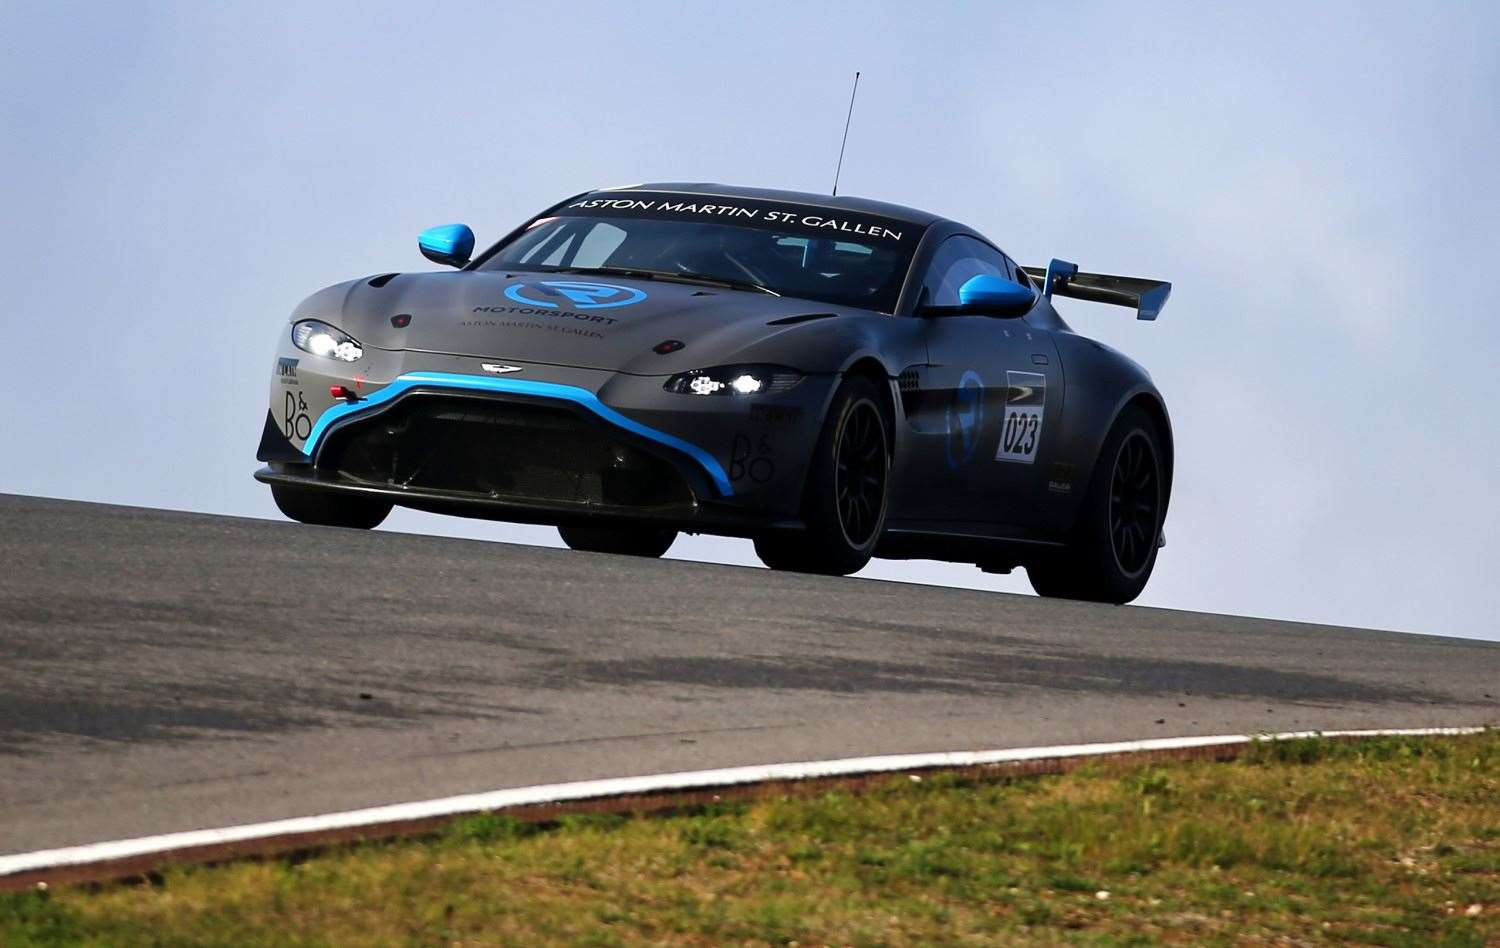 GEORGE GAMBLE'S supercar for the upcoming GT4 European Series ­— the R-Motorsport Aston Martin Vantage AMR GT4.